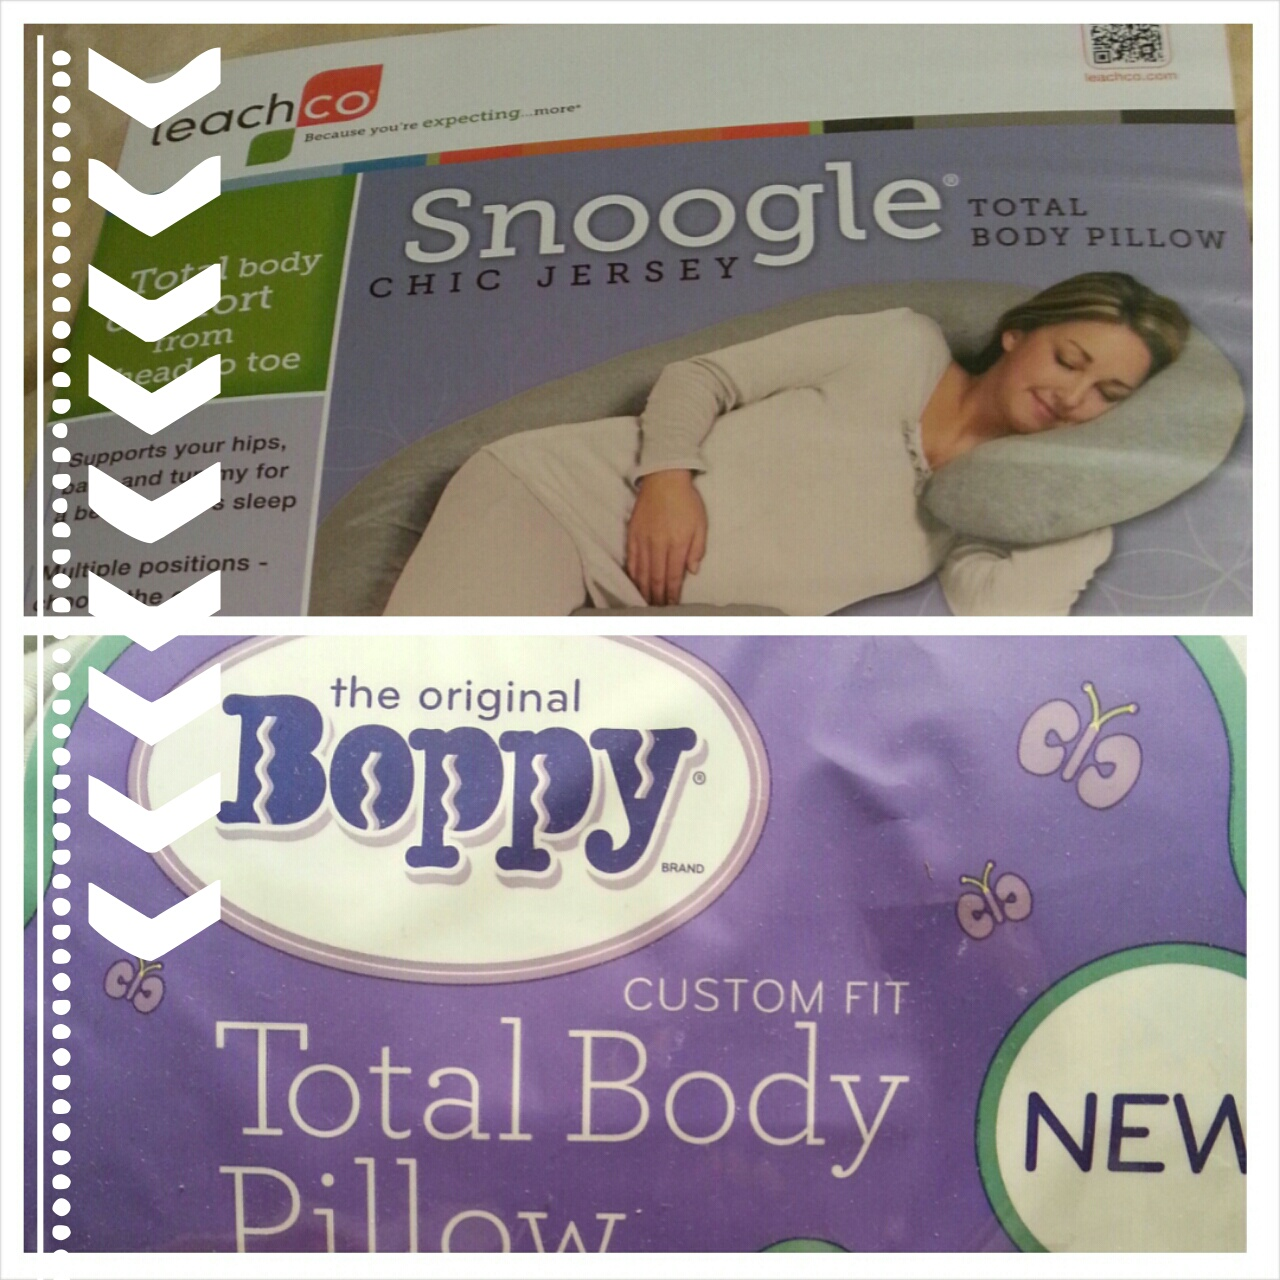 Pregnancy Pillow, blog, boppy versus snoogle, what's best